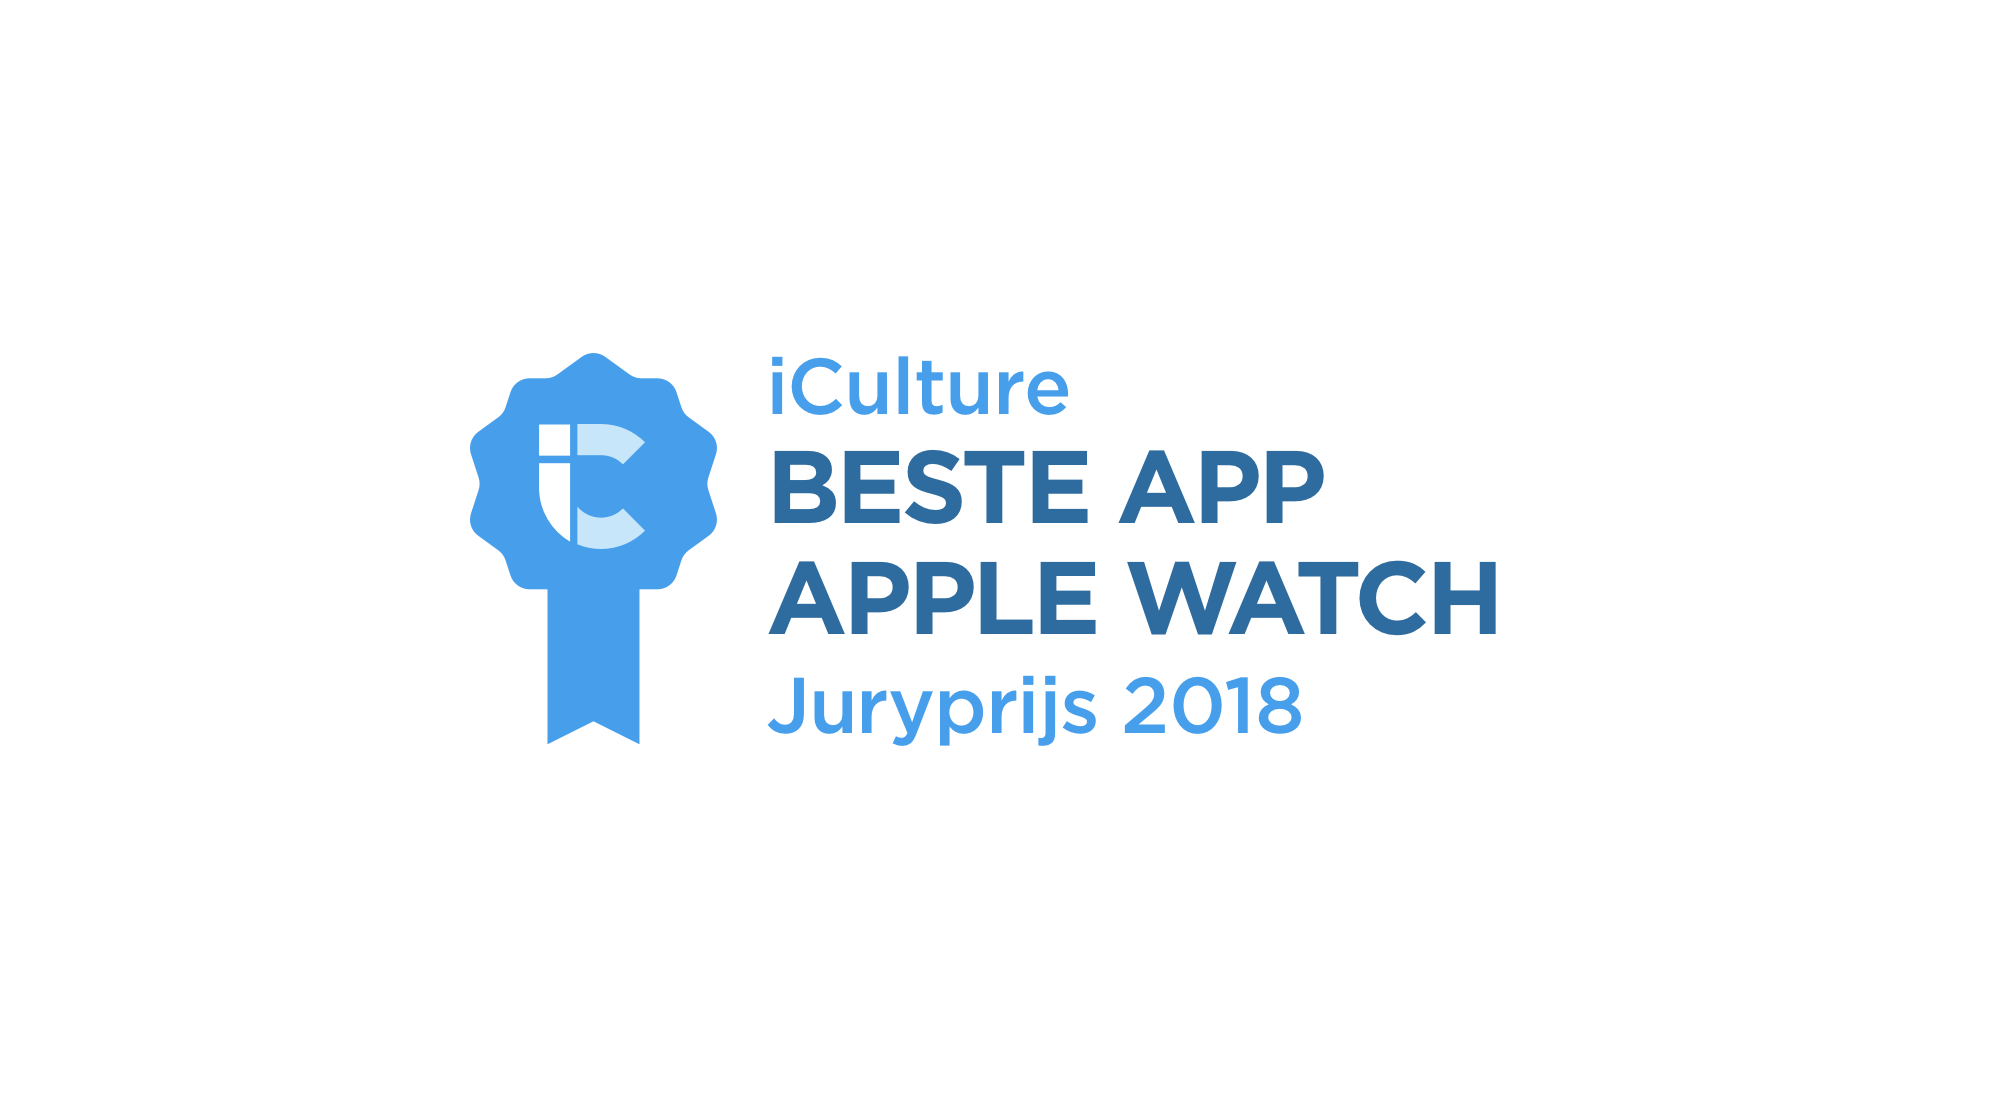 Beste app Apple Watch 2018.